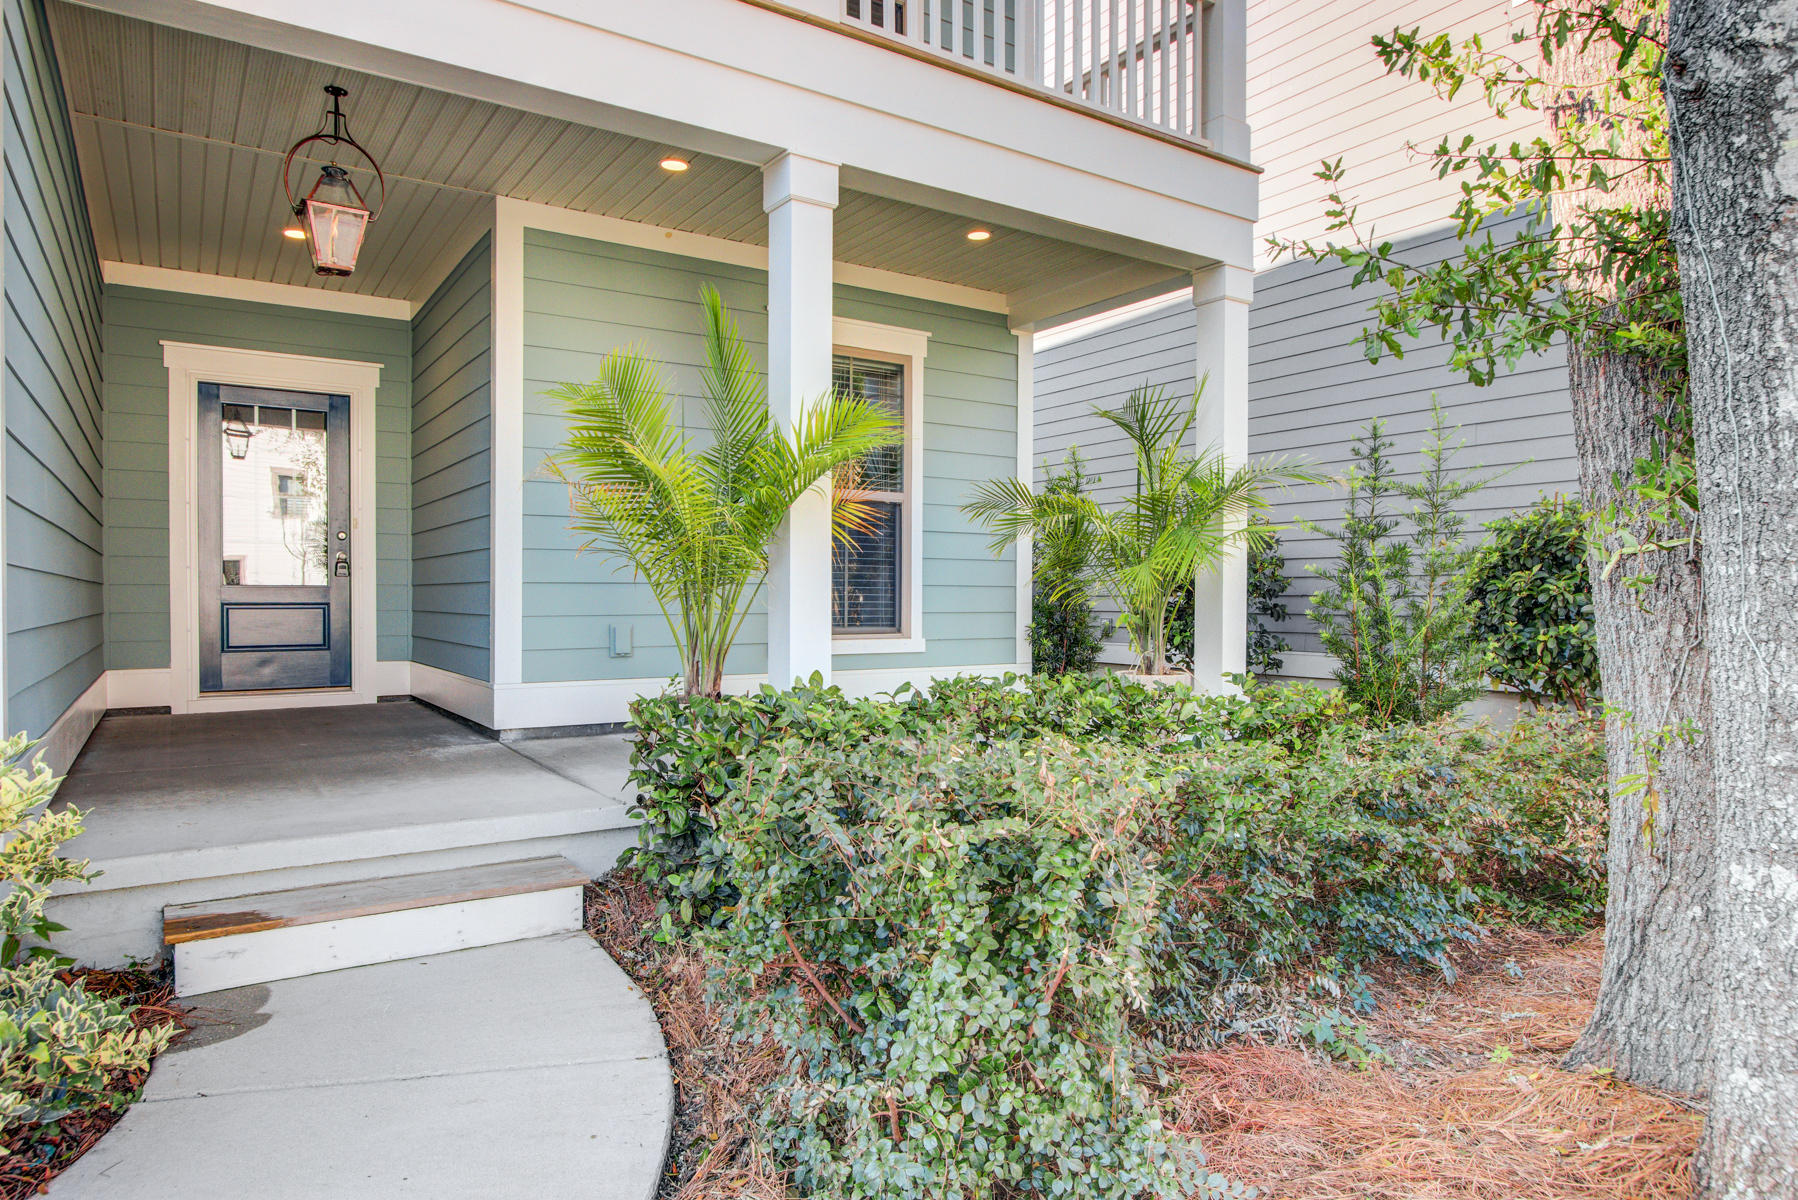 Dills Bluff Homes For Sale - 1146 Bright, Charleston, SC - 26